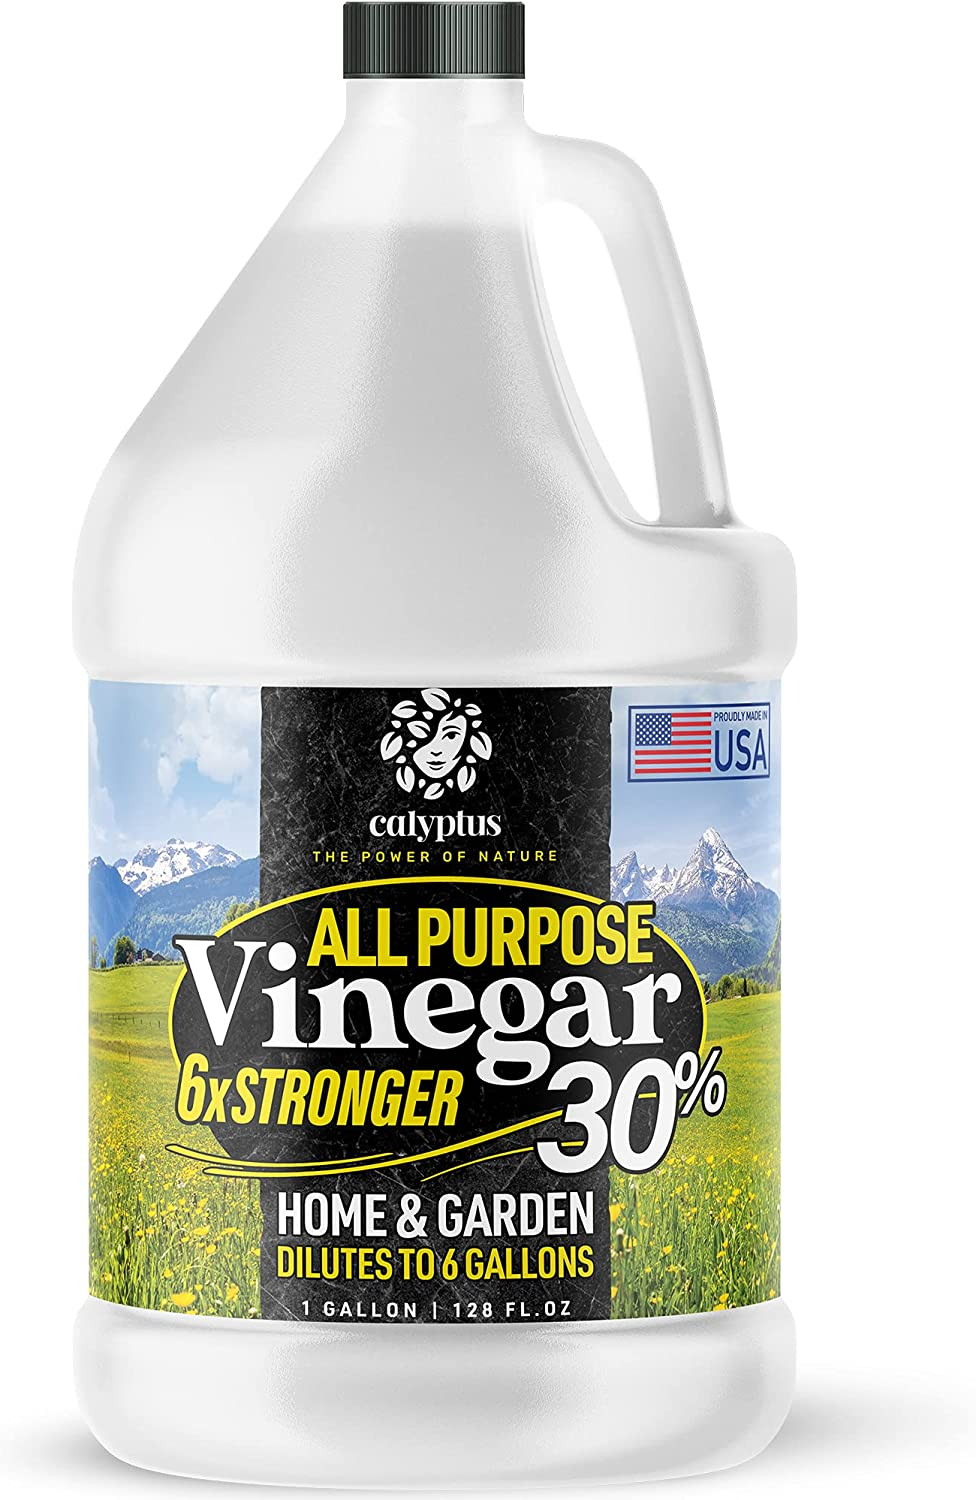 Calyptus 30% Pure Concentrated Vinegar | Dilutes to 6 Gallons | 6x Power Cleaning Vinegar | Plant Based | Home and Outdoor | All-Purpose Cleaner, 1 Gallon